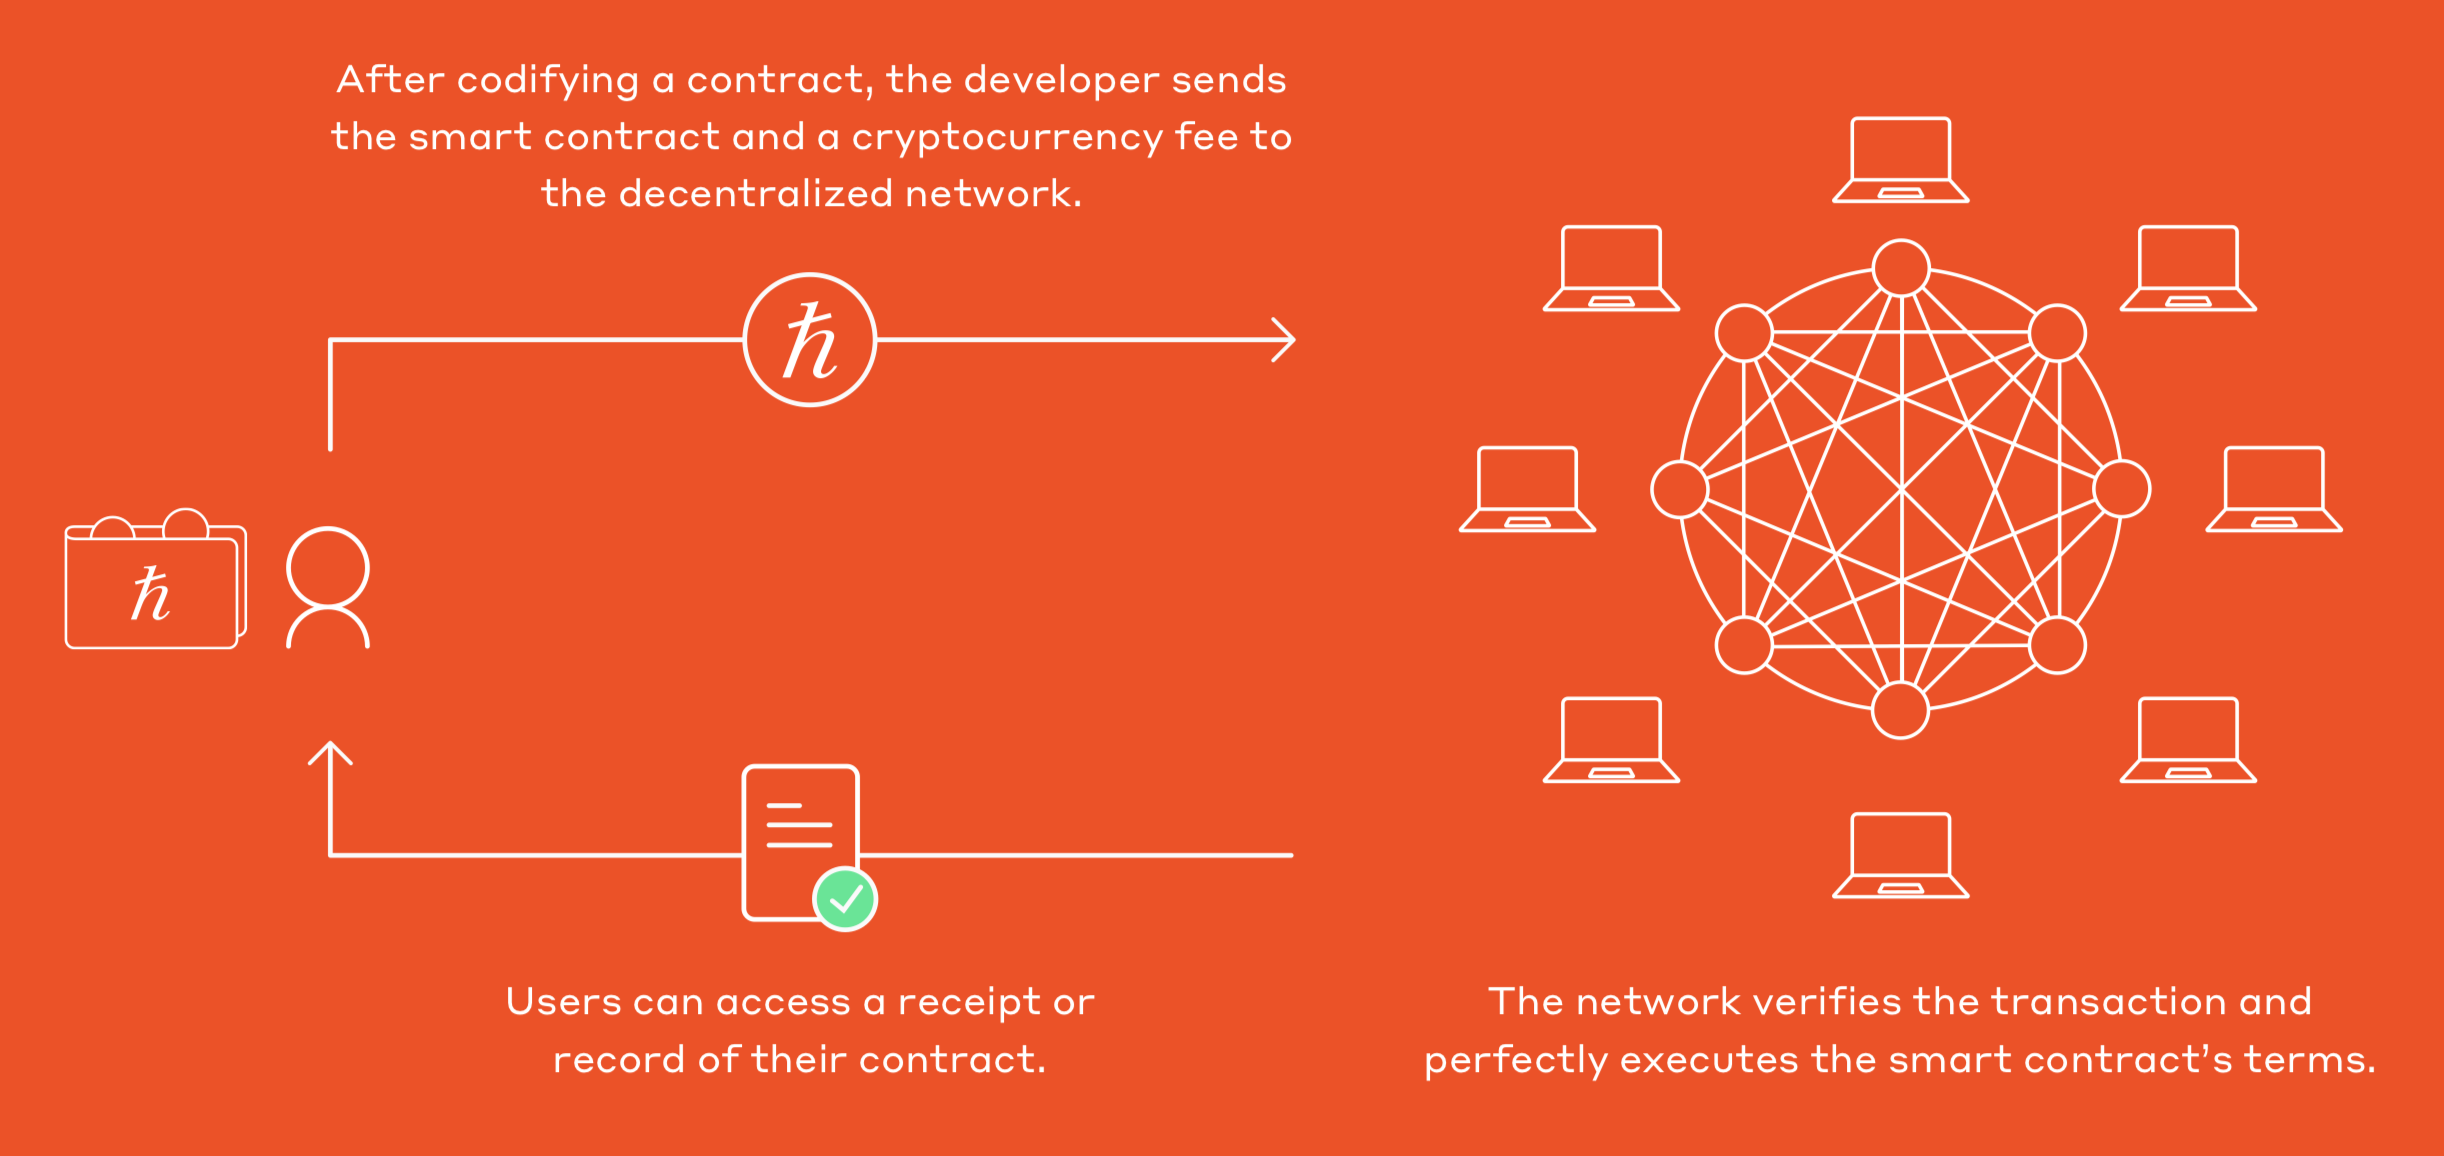 Smart contracts are processed on the decentralized, Hedera network in exchange for a fee.